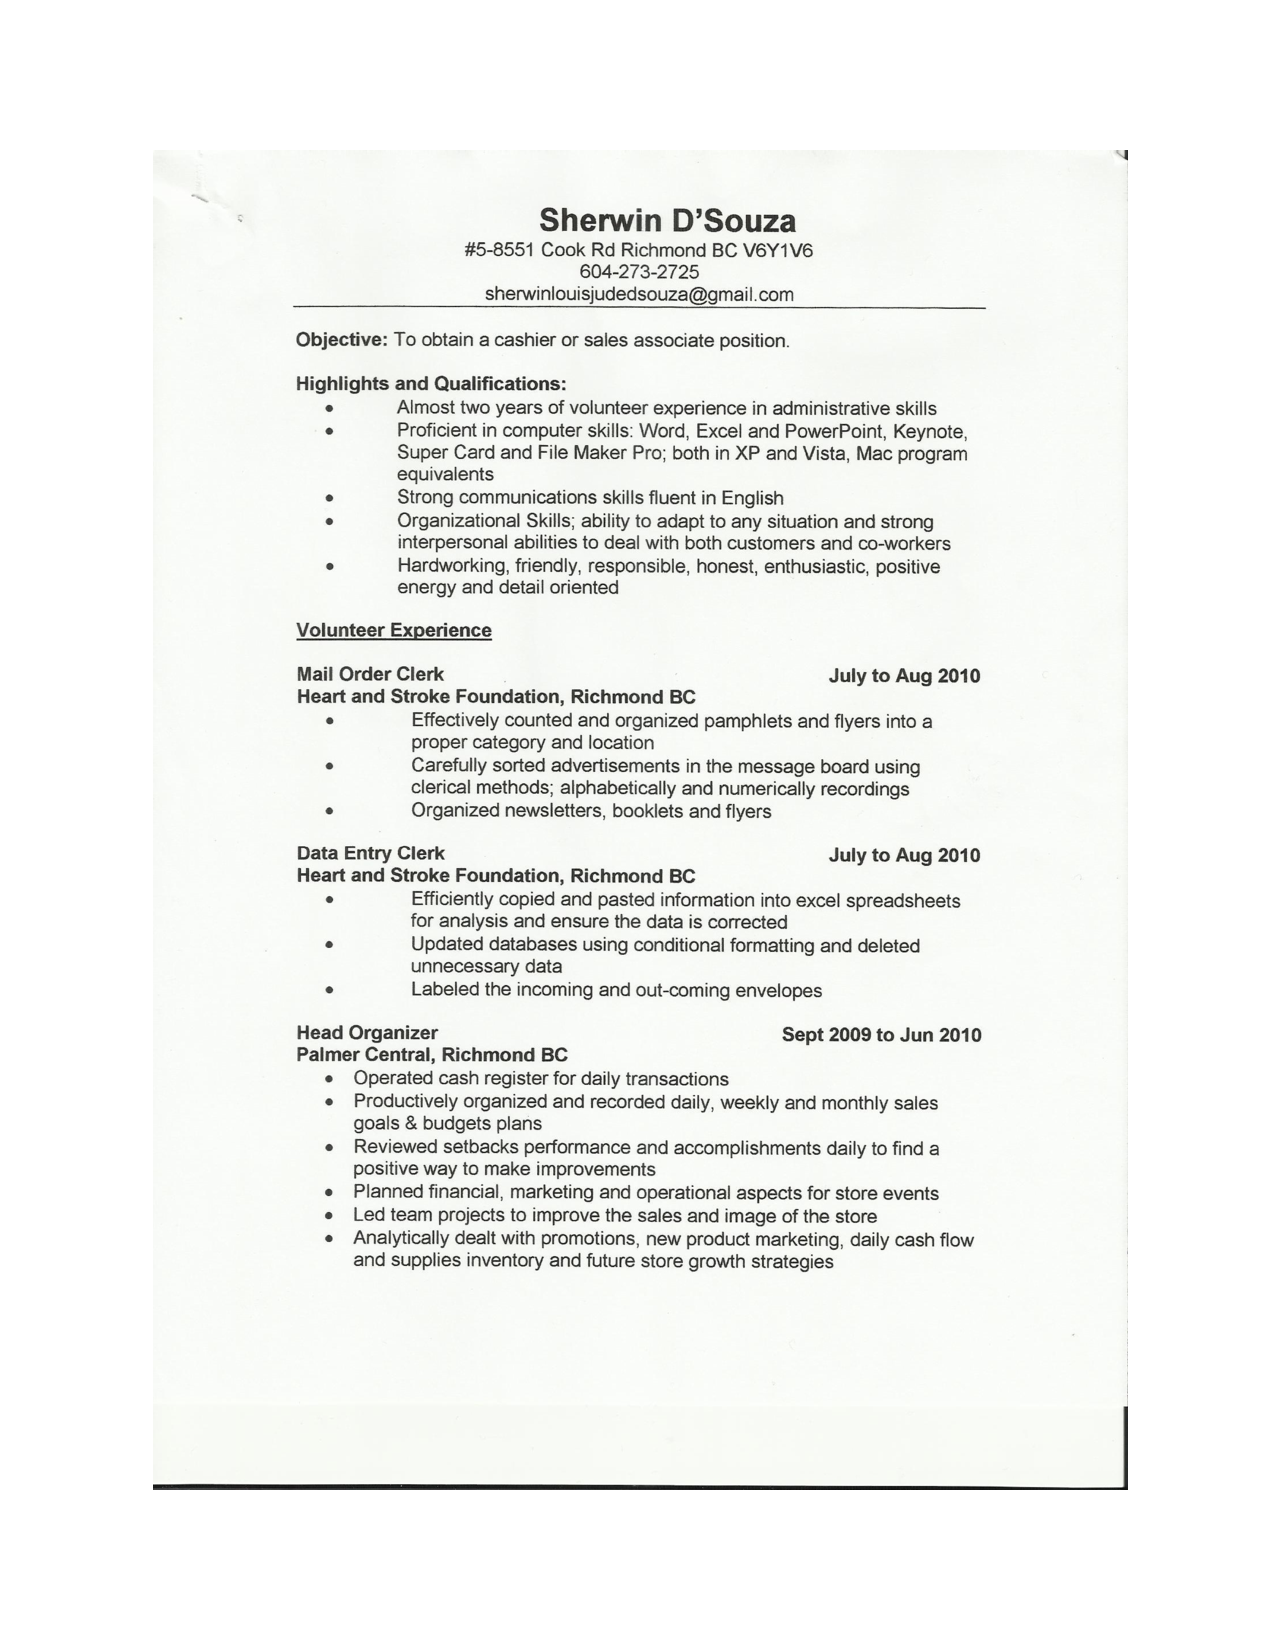 resume job description nurse aide resume nurse aide resume job ...